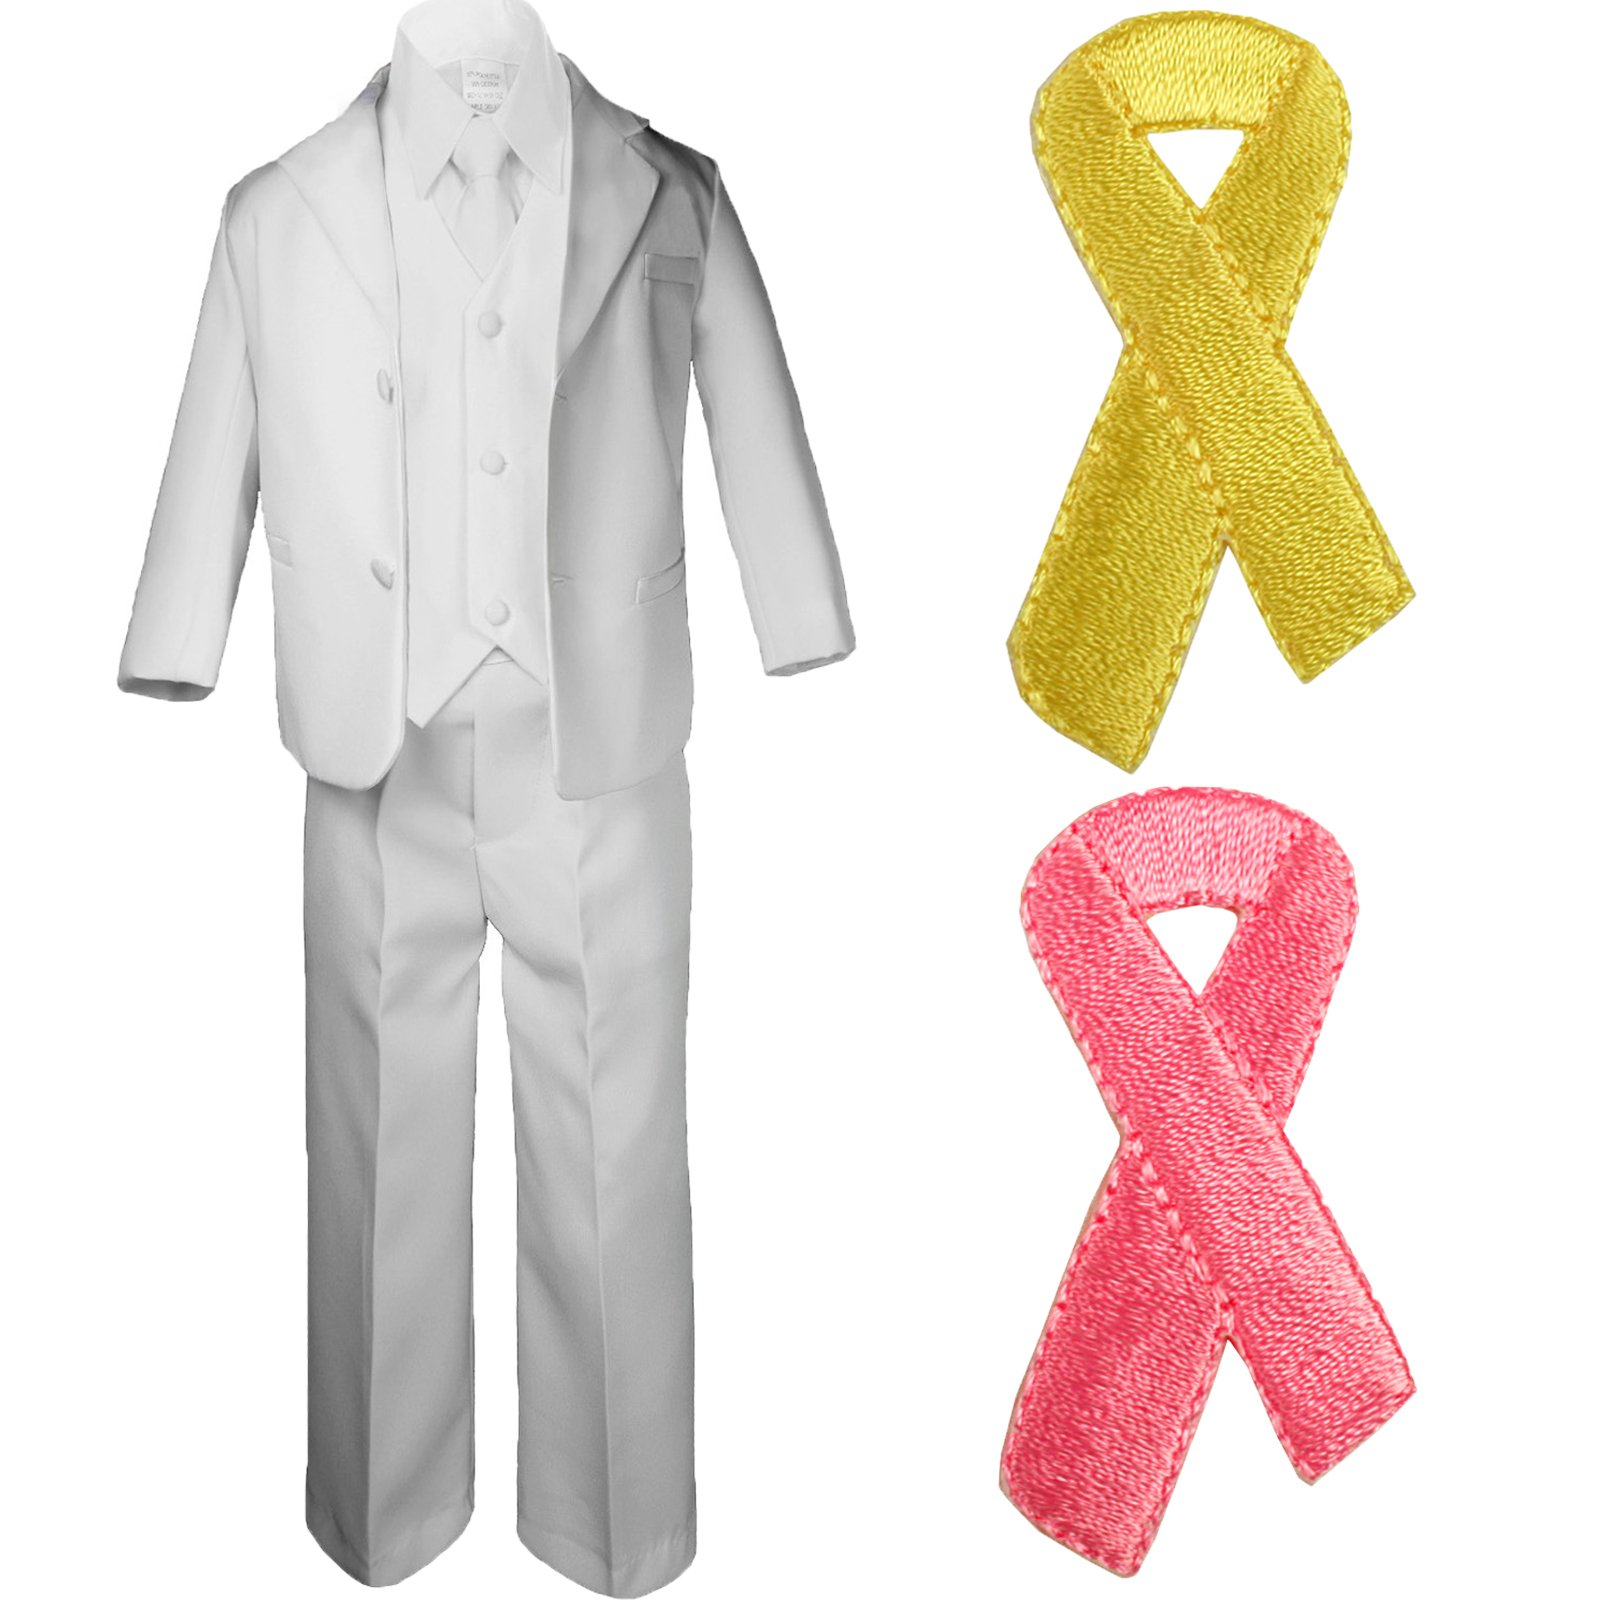 5pc Baby Boy Teen WHITE SUIT w/ Cancer Awareness Ribbon Adhesive LOVE HOPE Patch (2T, 5pc White suit set Only)